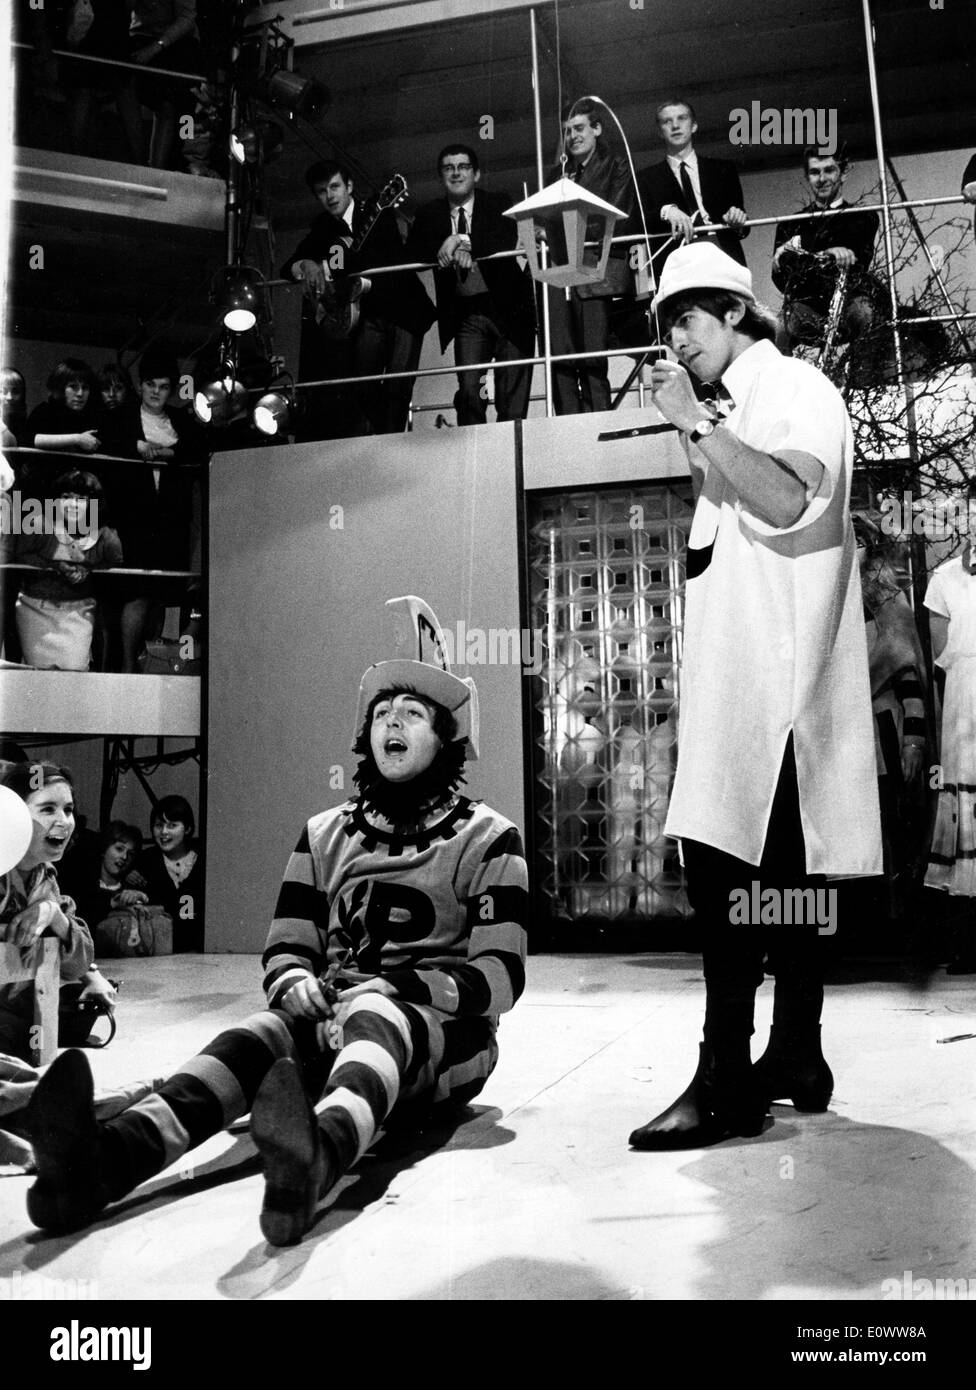 The Beatles Paul McCartney and George Harrison performing on a television show - Stock Image